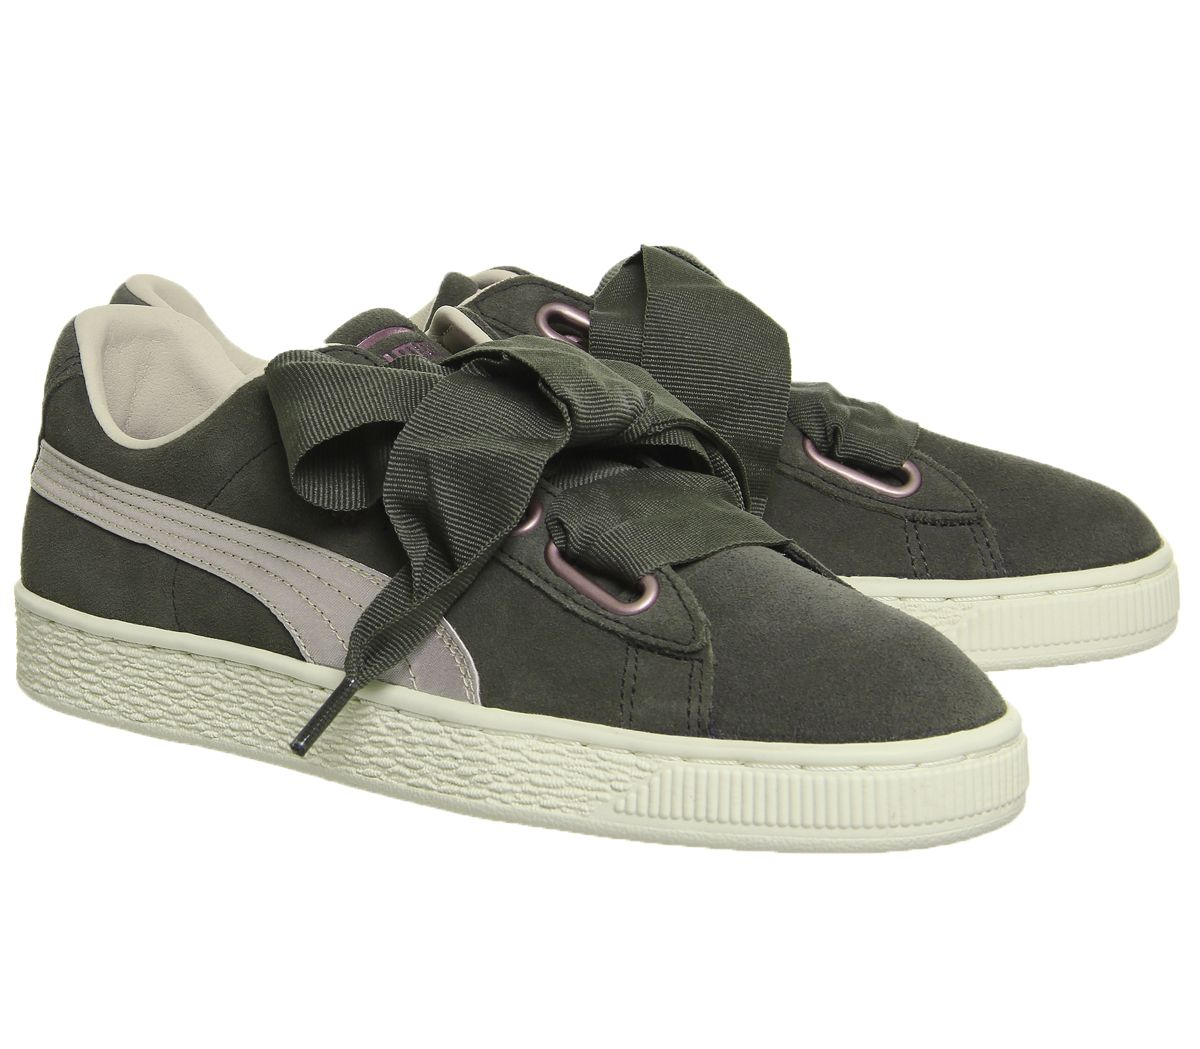 8a5432aa85 Sentinel Womens Puma Suede Heart Trainers Olive Night Pink Tint Rose Gold  Trainers Shoes